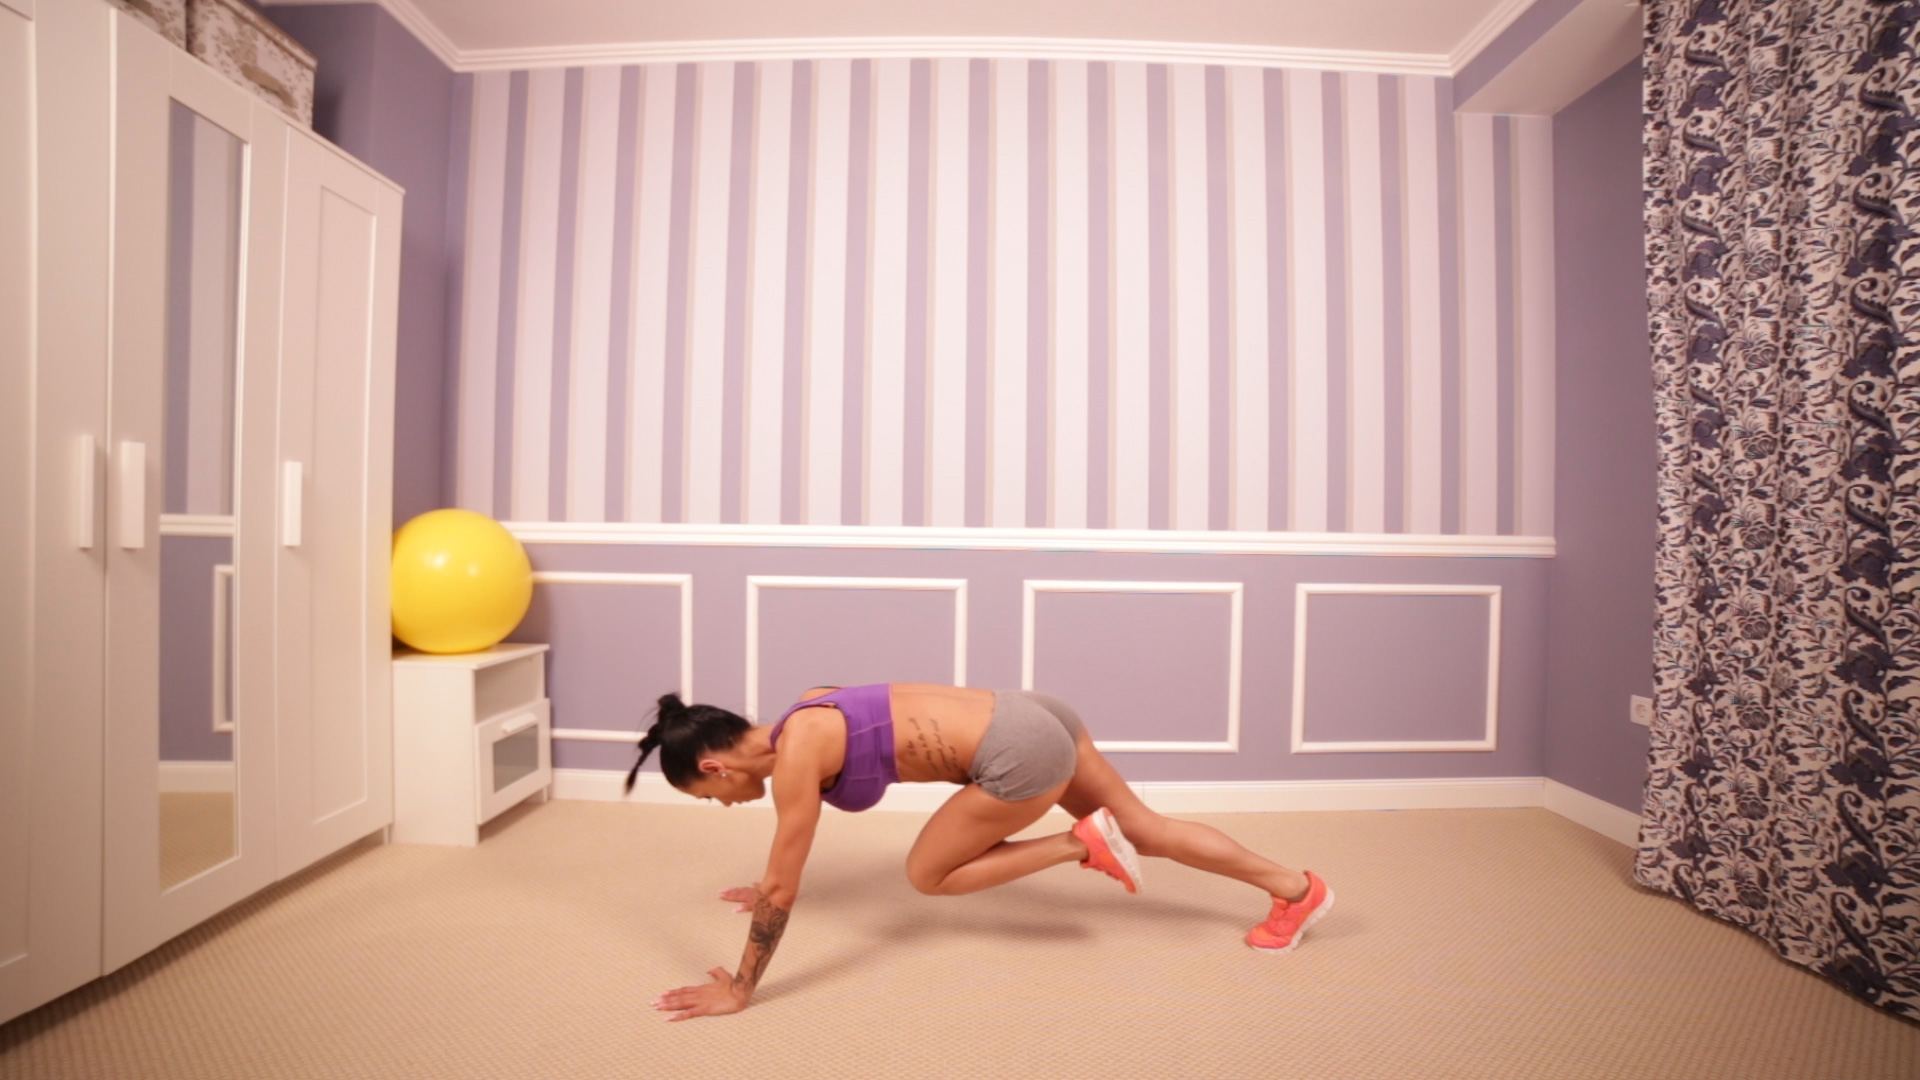 best time to workout for weight loss